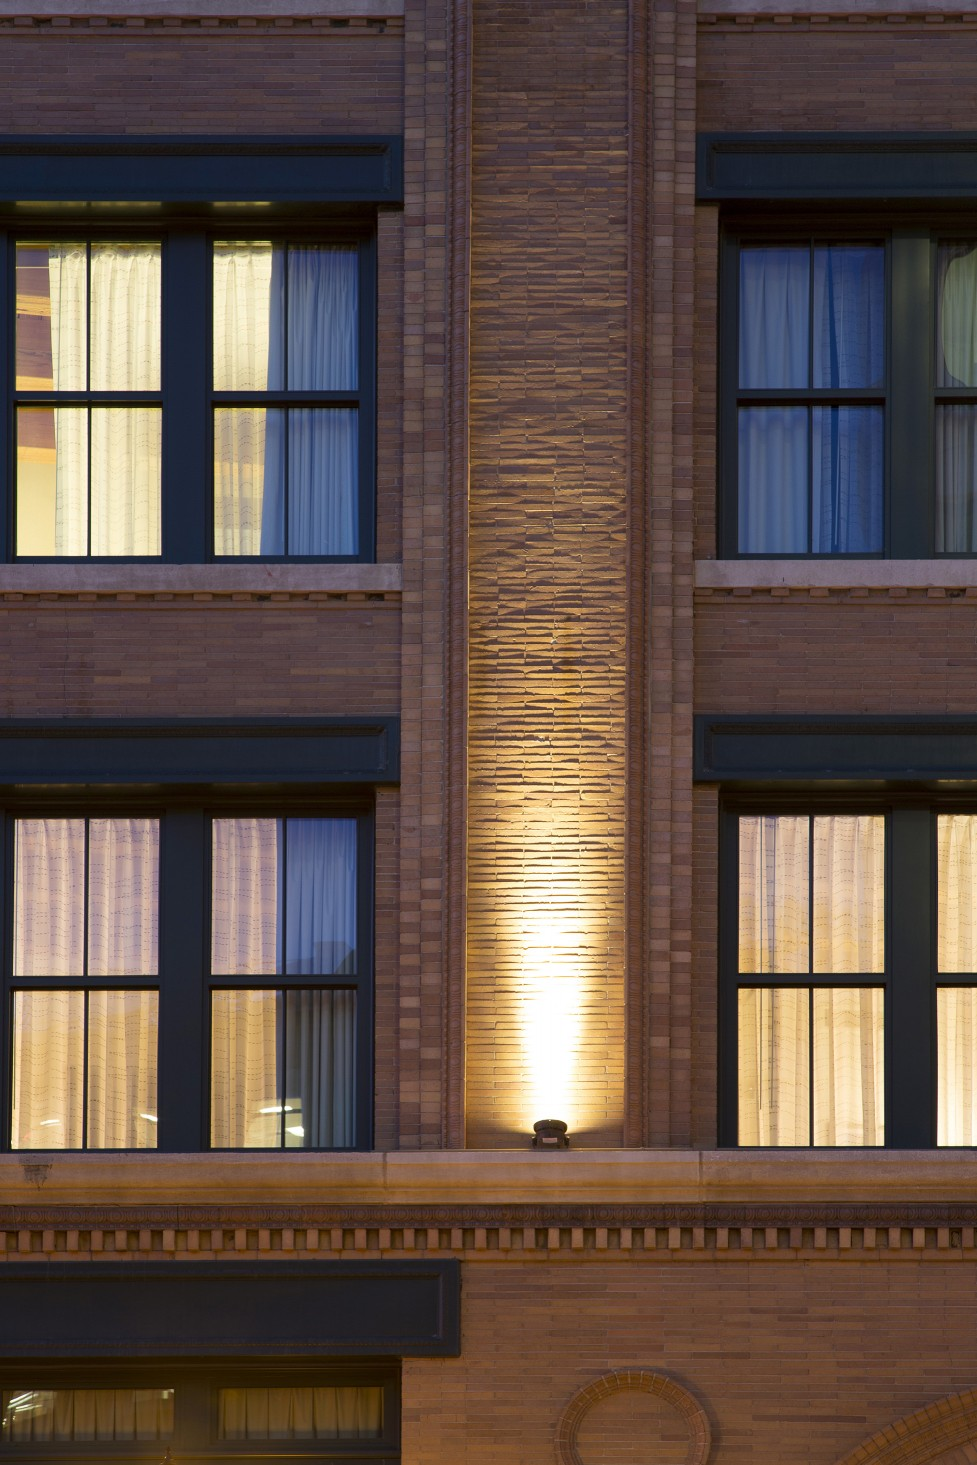 Schweppe used Lumenpulse Lumenbeam Medium fixtures to accent the facade.